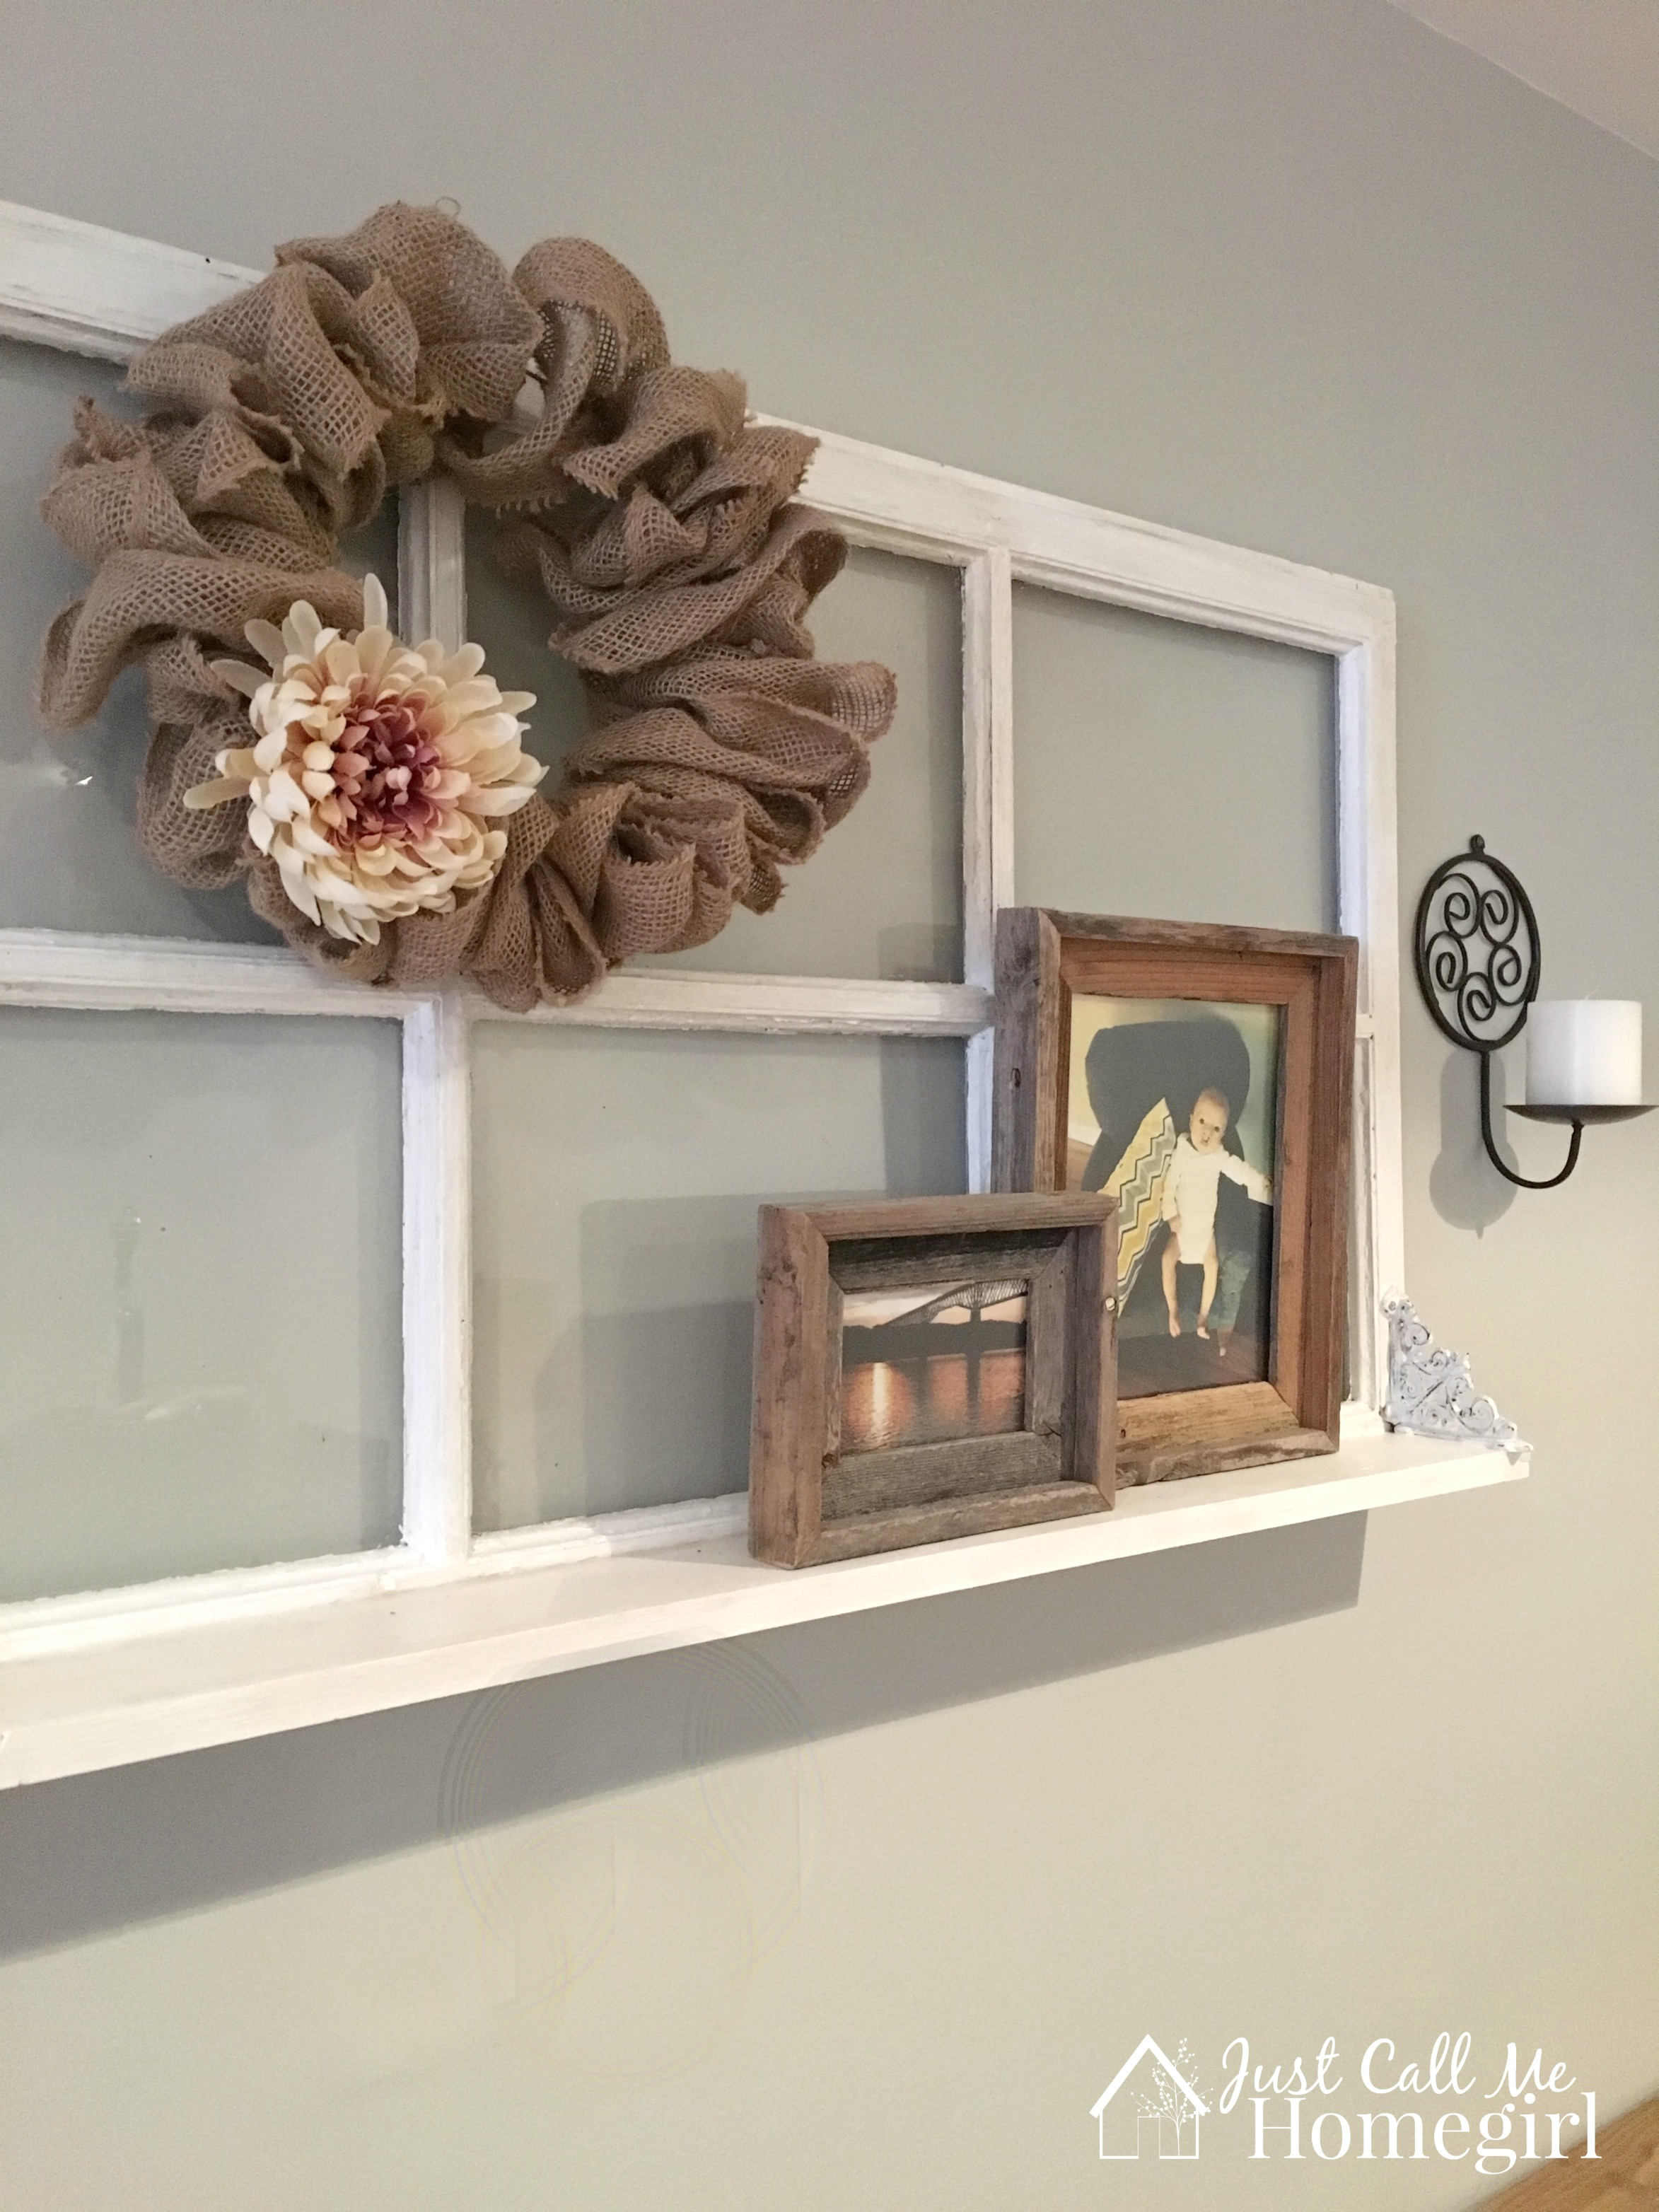 Adding a Shelf to an Old Window - Just Call Me Homegirl